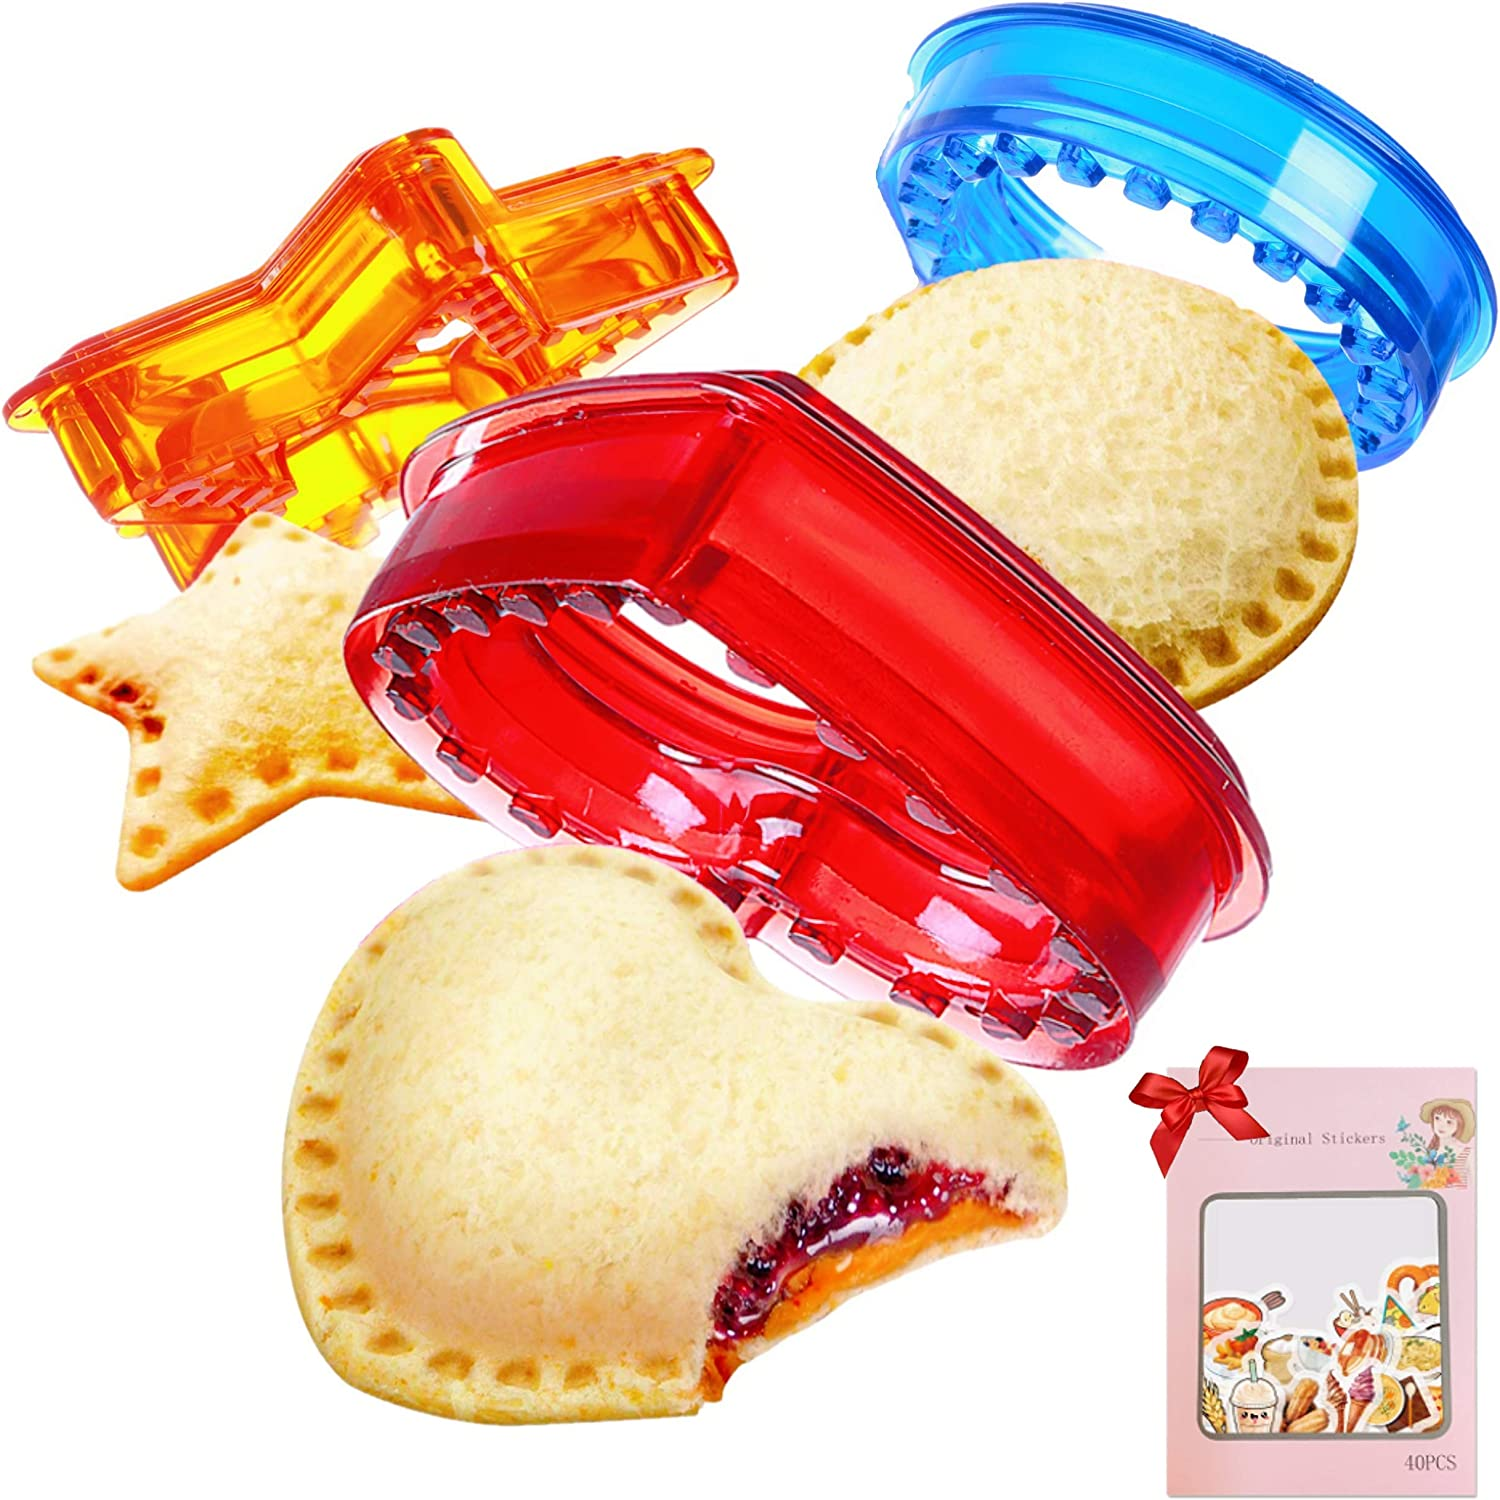 Sandwich Cutter and Sealer, Uncrustables Sandwich Maker, Sandwich Sealer and Decruster, Sandwich cutter for Kids Great for Lunchbox and Bento Box, DIY Pocket Sandwich Heart Star Round Shape